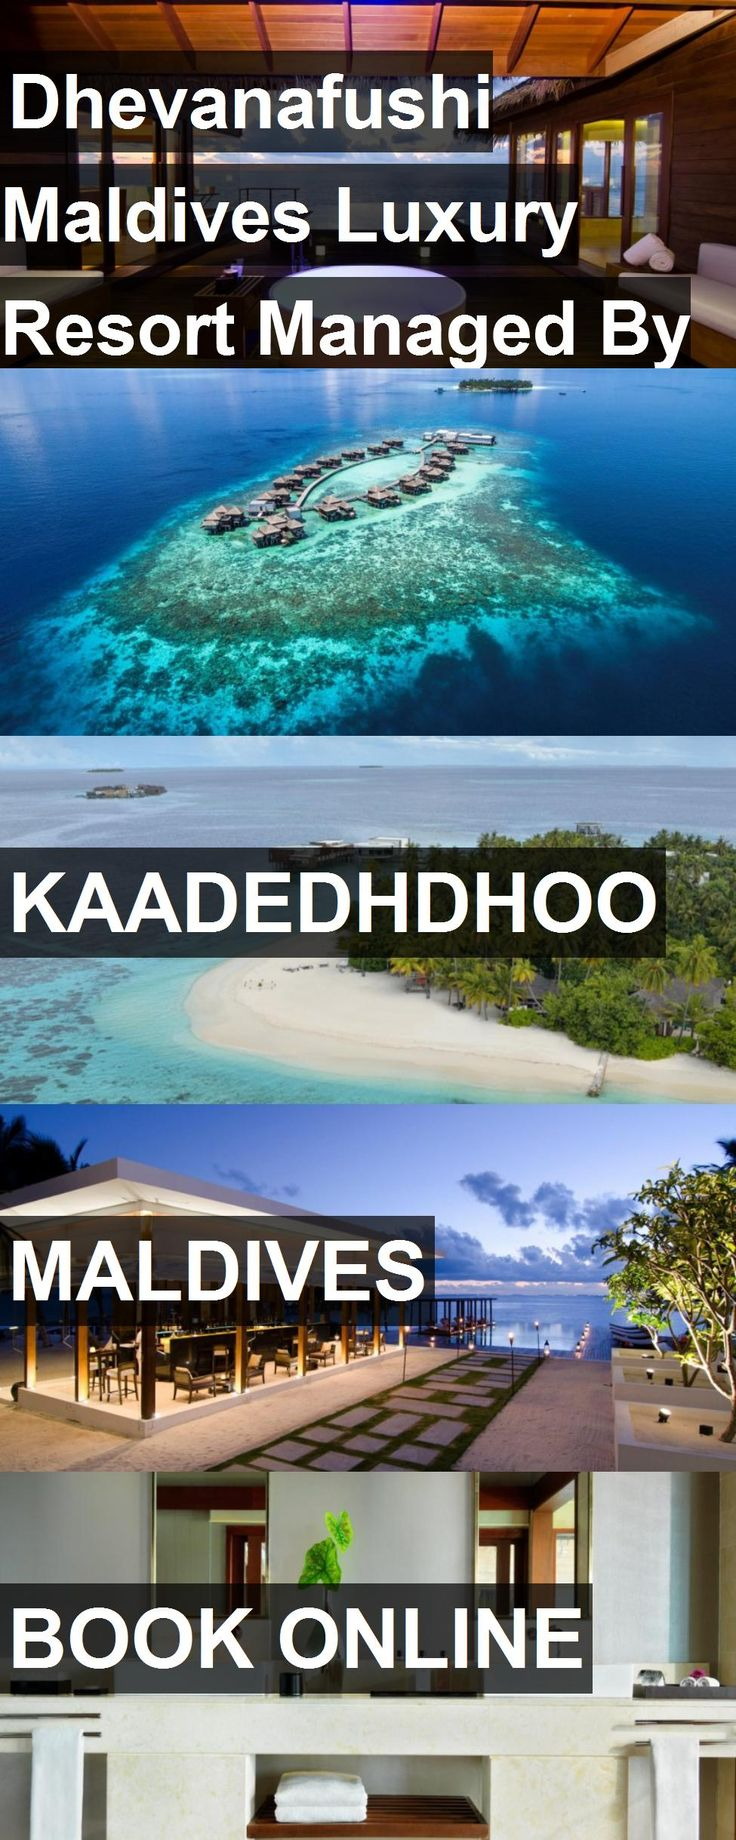 Dhevanafushi Maldives Luxury Resort Managed By AccorHotels in Kaadedhdhoo, Maldives. For more information, photos, reviews and best prices please follow the link. #Maldives #Kaadedhdhoo #travel #vacation #hotel